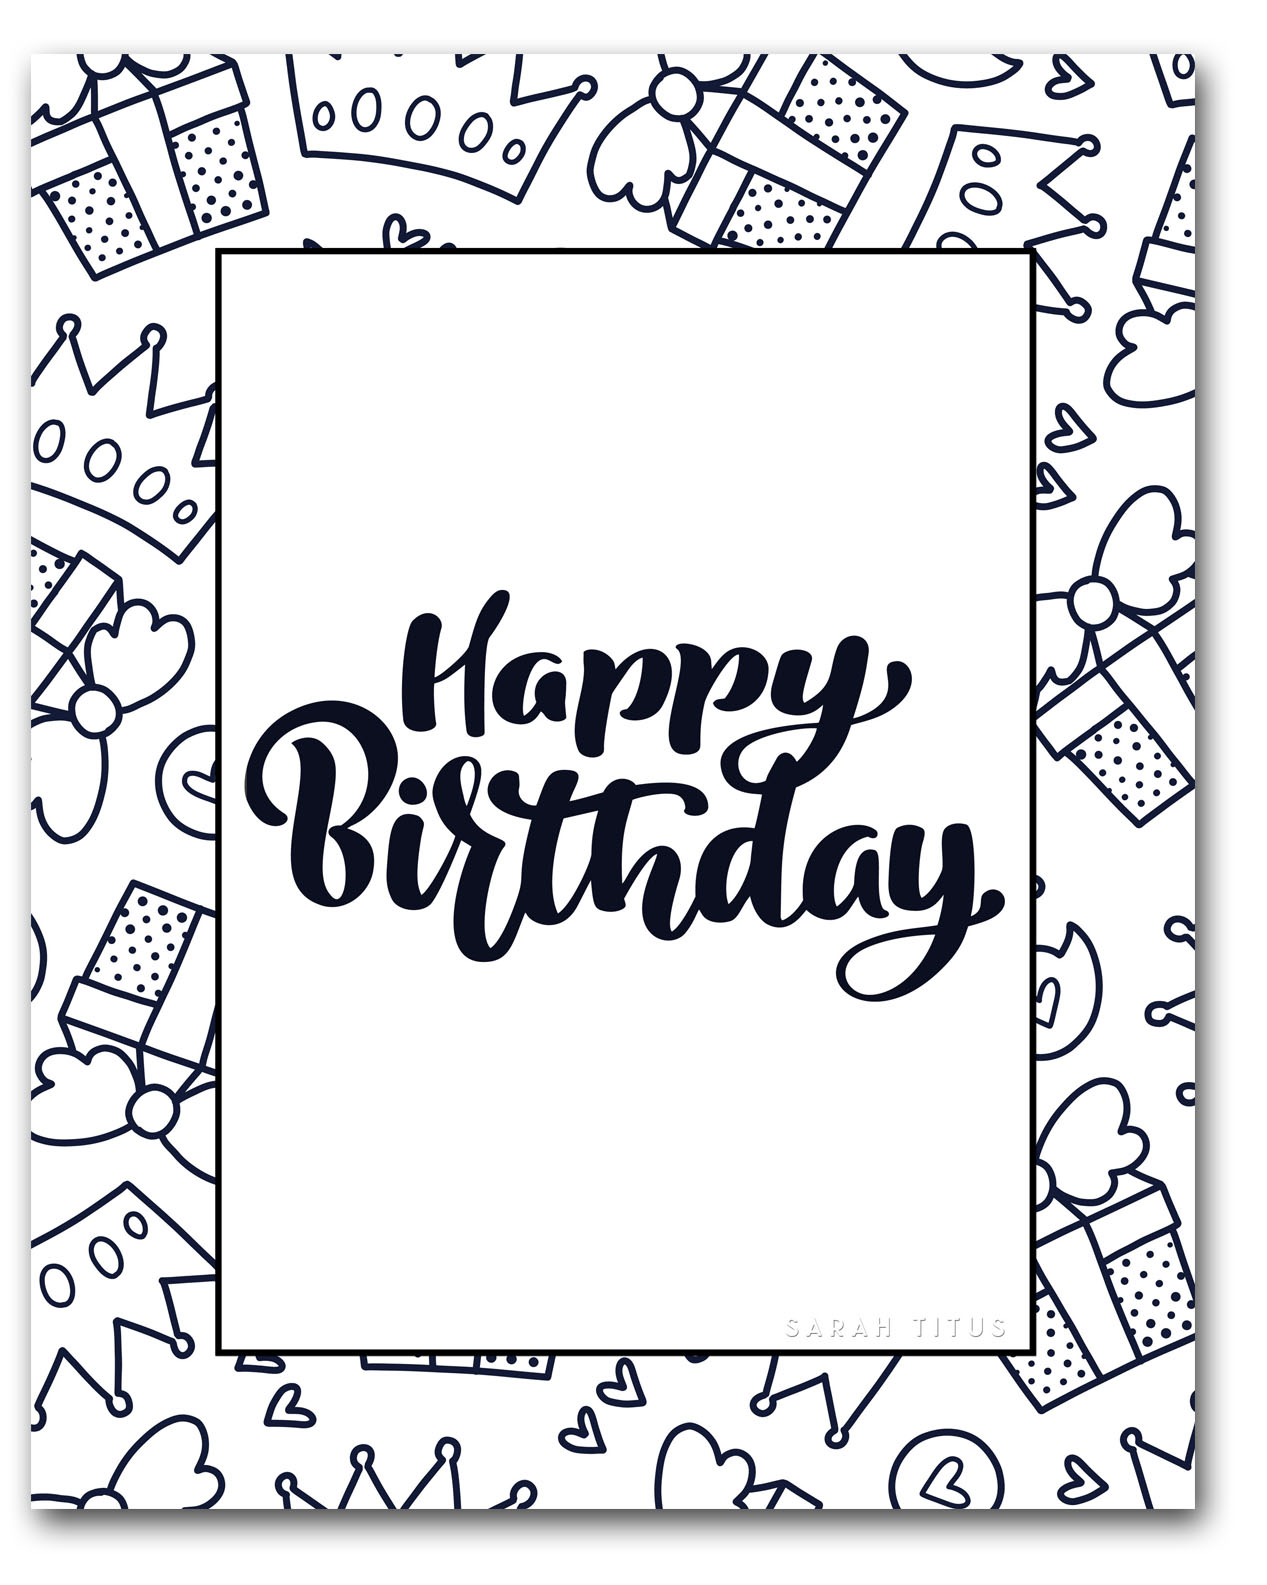 Happy Birthday Coloring Pages To Print Free Printable Happy Birthday Coloring Sheets Sarah Titus